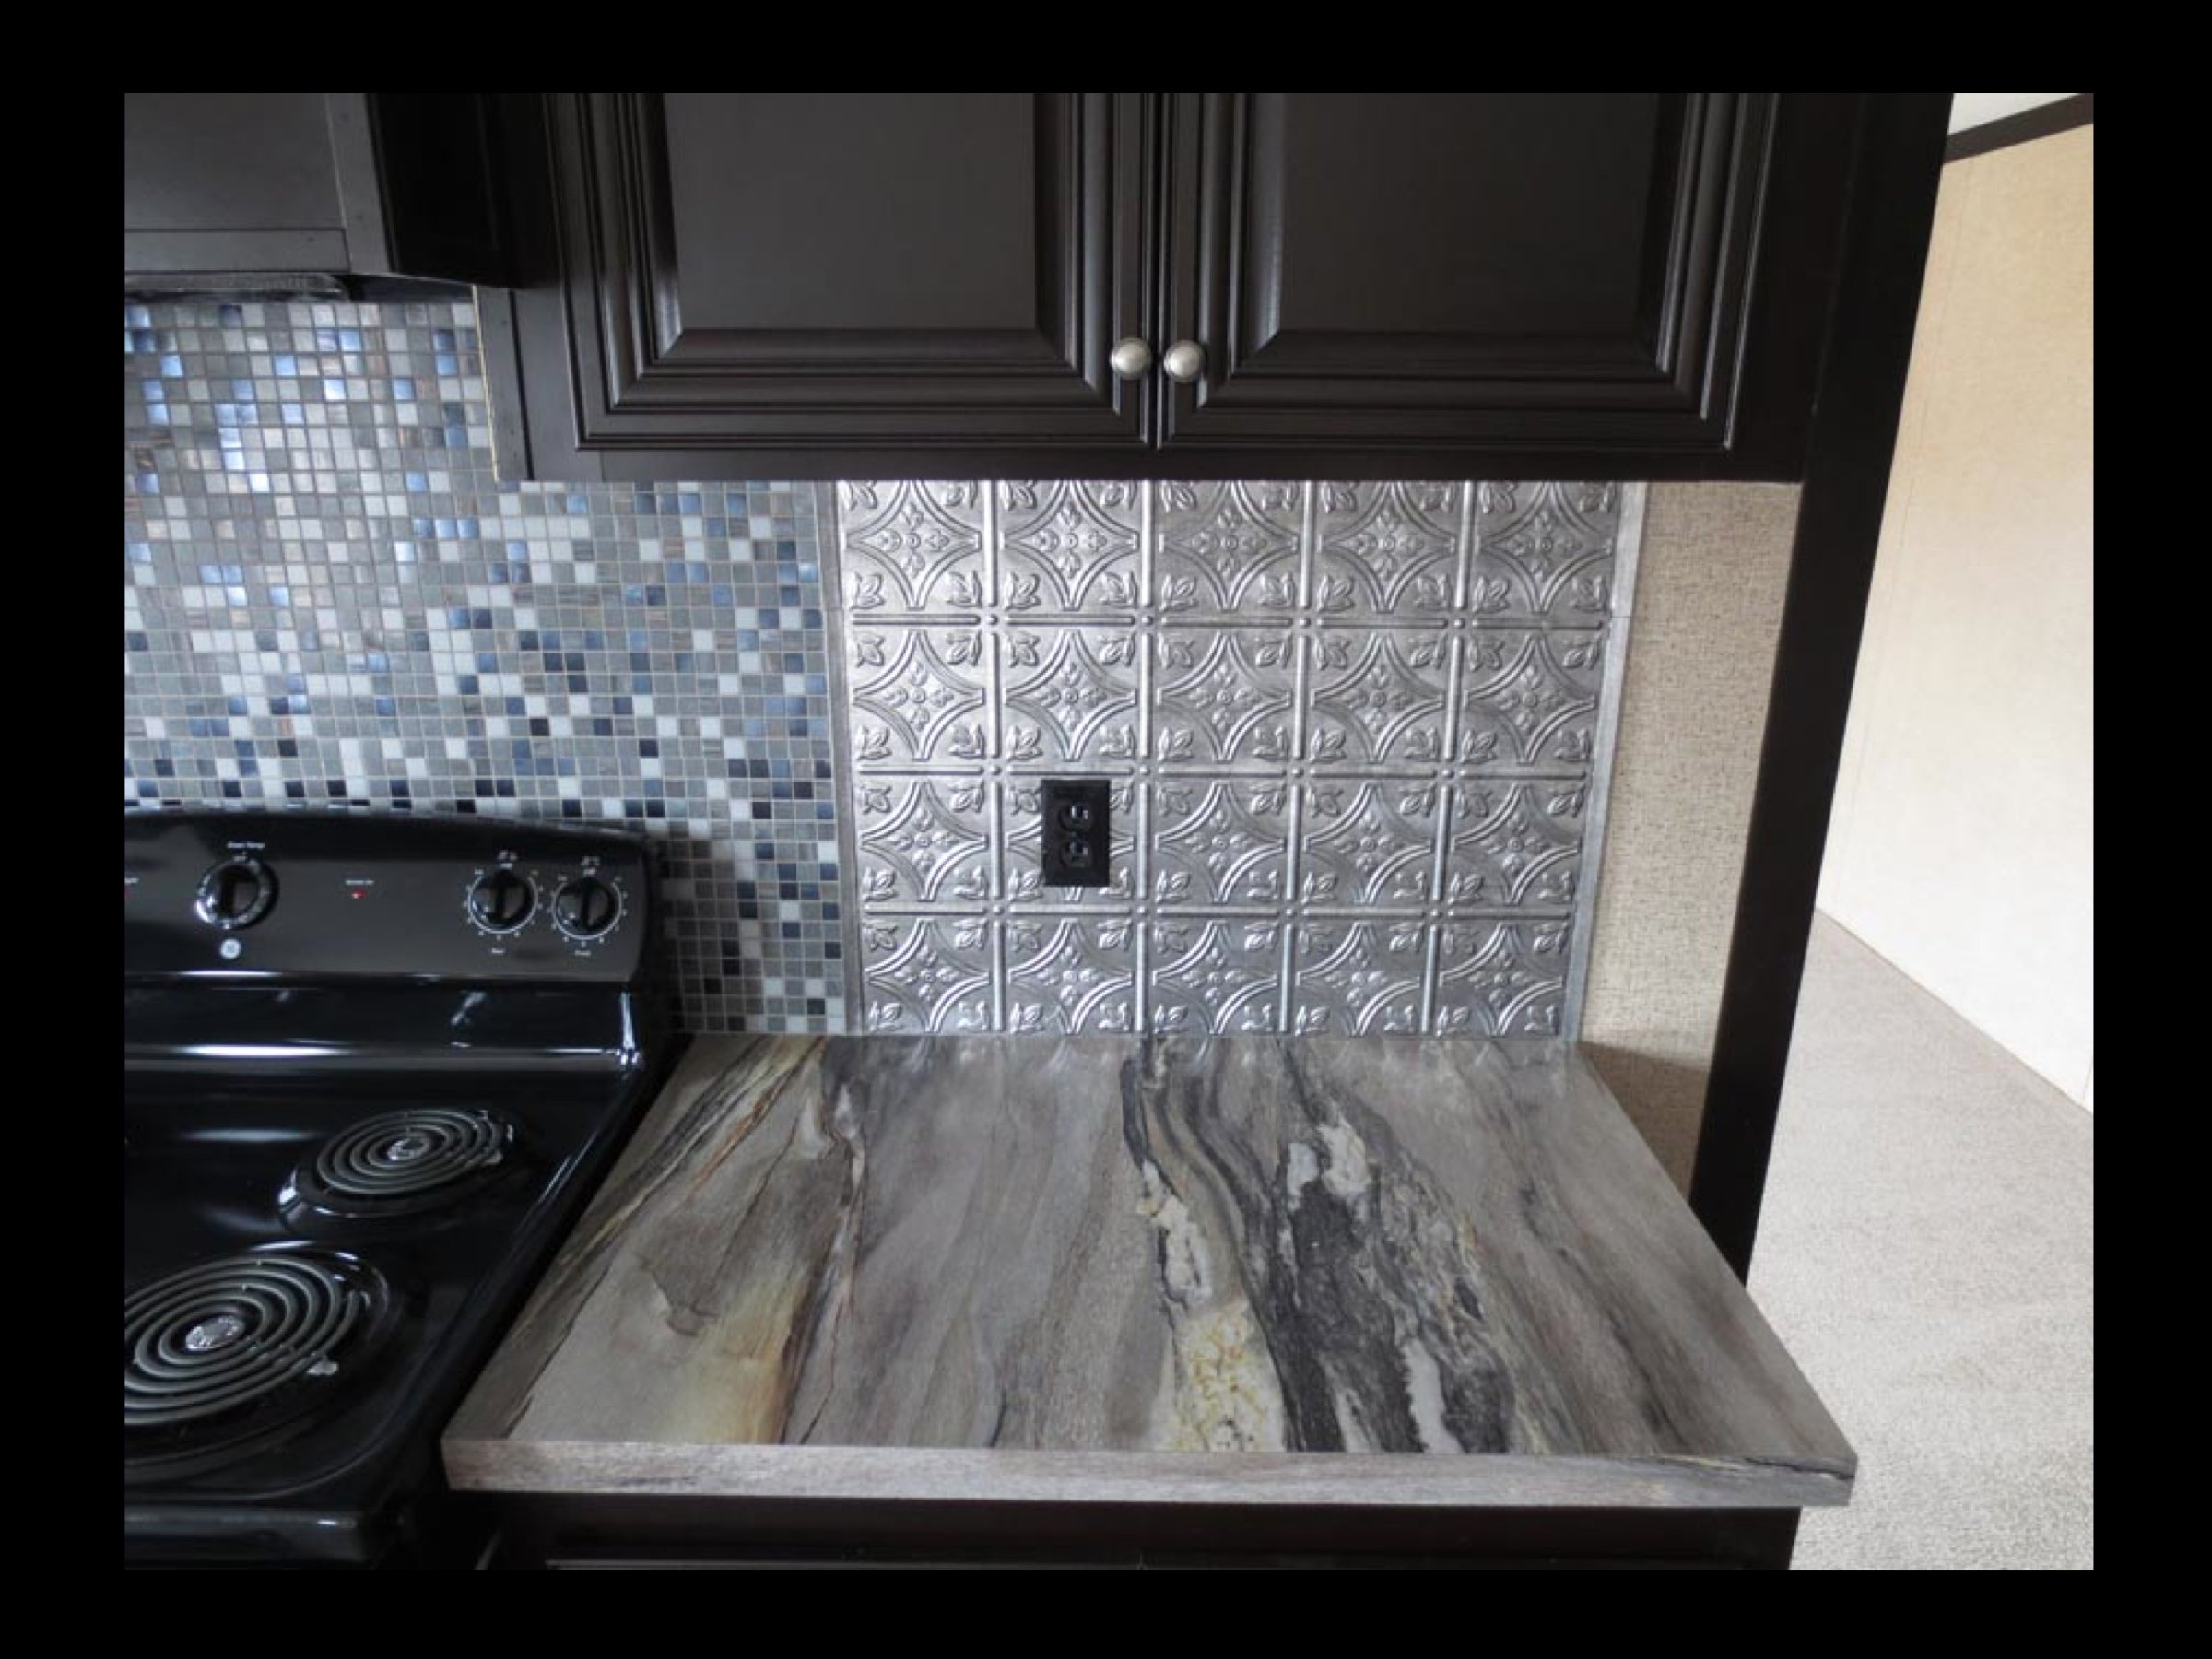 Laminate Kitchen Backsplash Laminate Countertops And Backsplash Ideas